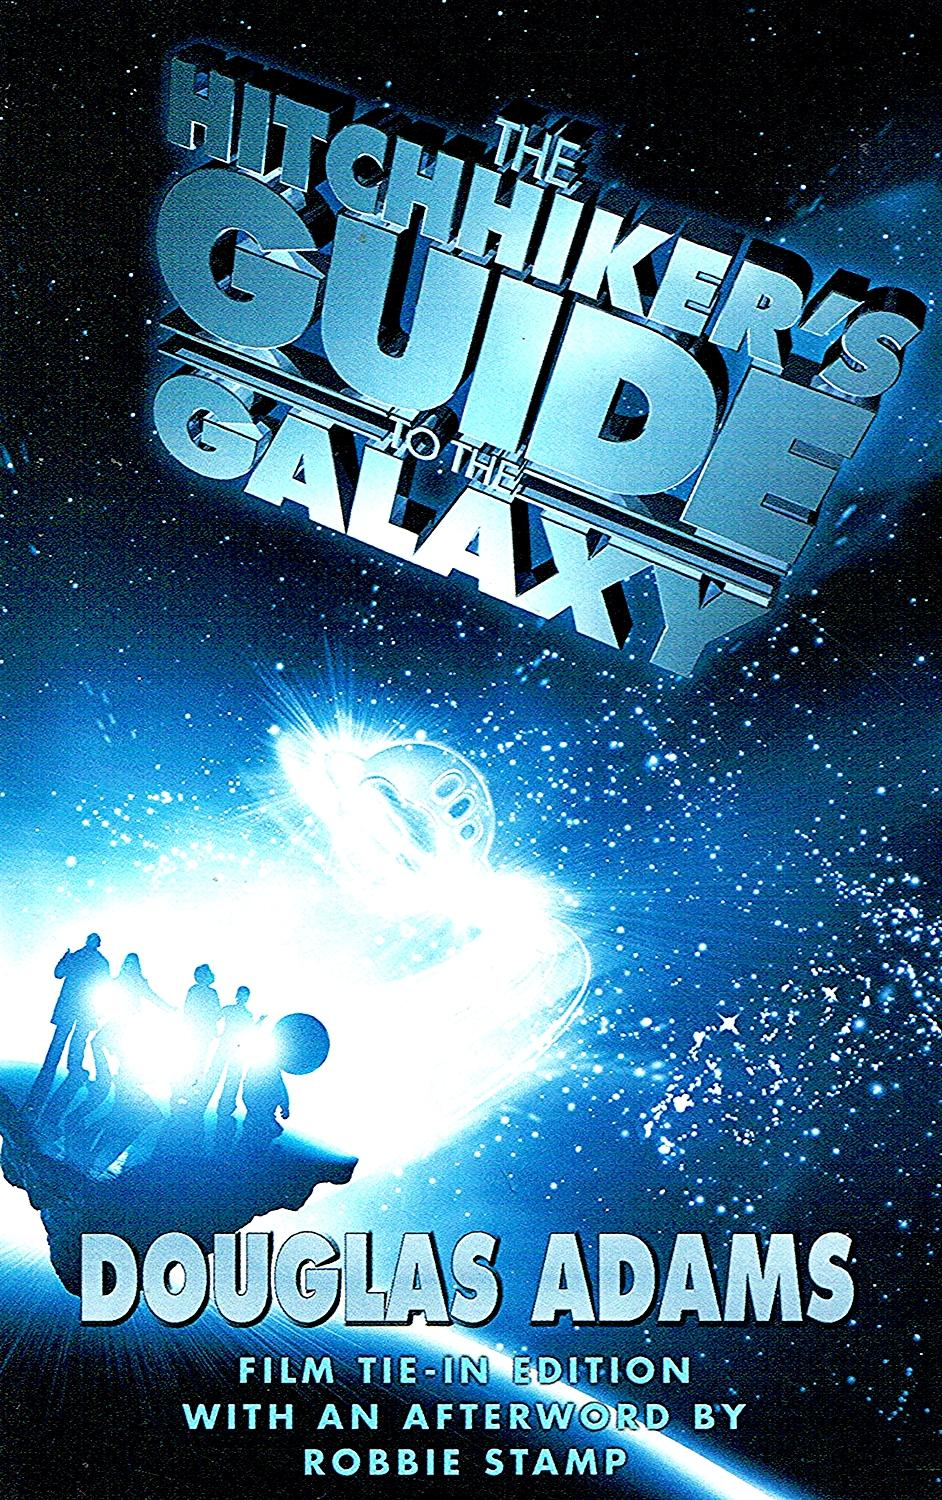 The hitchhiker's guide to the galaxy the book.